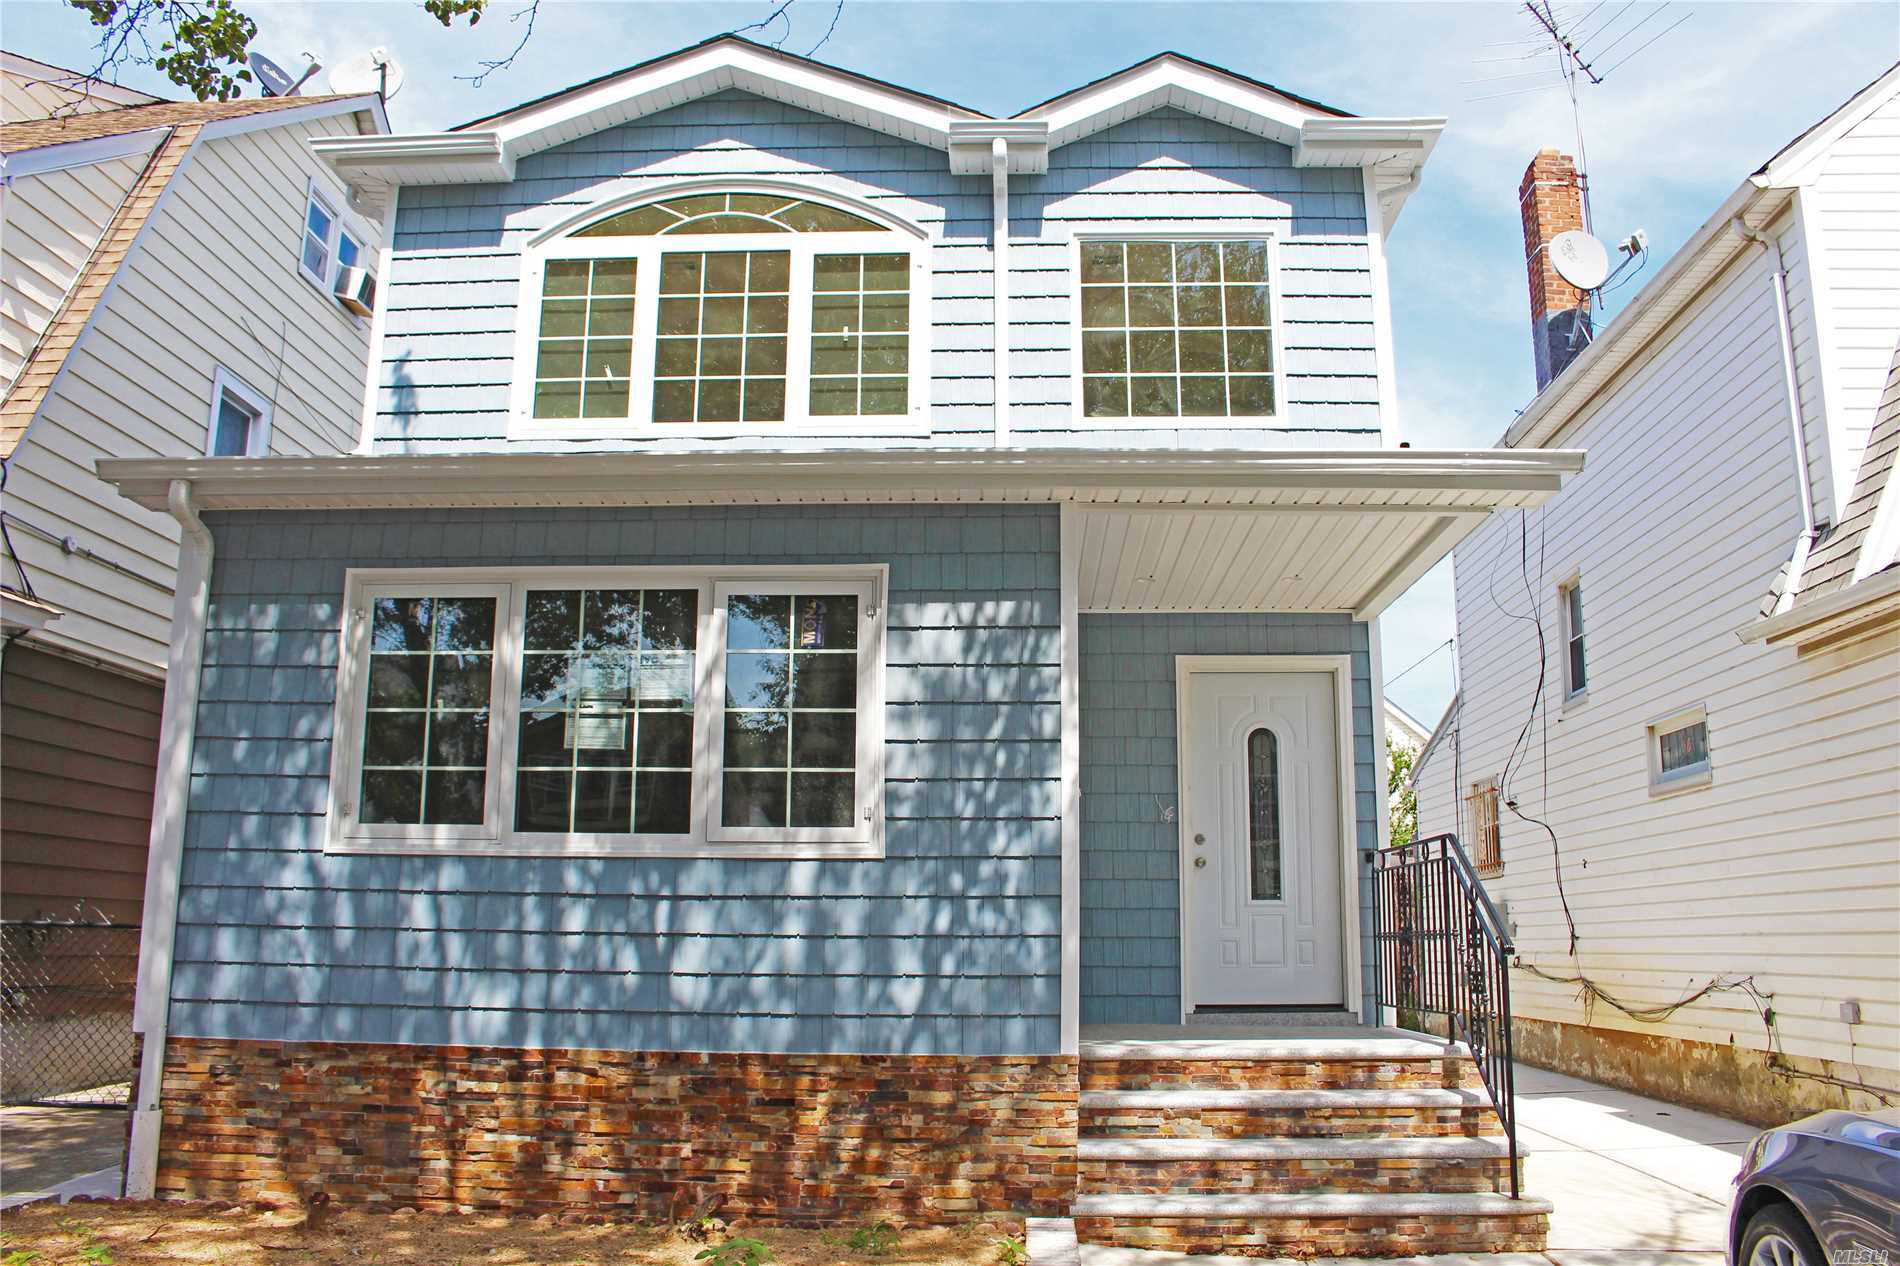 Located Right In The Heart Of S. Ozone Park. Come And Take A Look At This Fully Renovated 2 Family Home. Everything Is Brand New, From Kitchens/Baths To Appliances. Every Bedroom Is Very Spacious And Has Its Own Closet. The Basement Is Completely Finished With Its Own Bathroom And Separate Entrance. This Home Also Features A Private Driveway And Garage. Walking Distance To Train Station/Shopping & House Of Worship. This Home Wont Last Long!